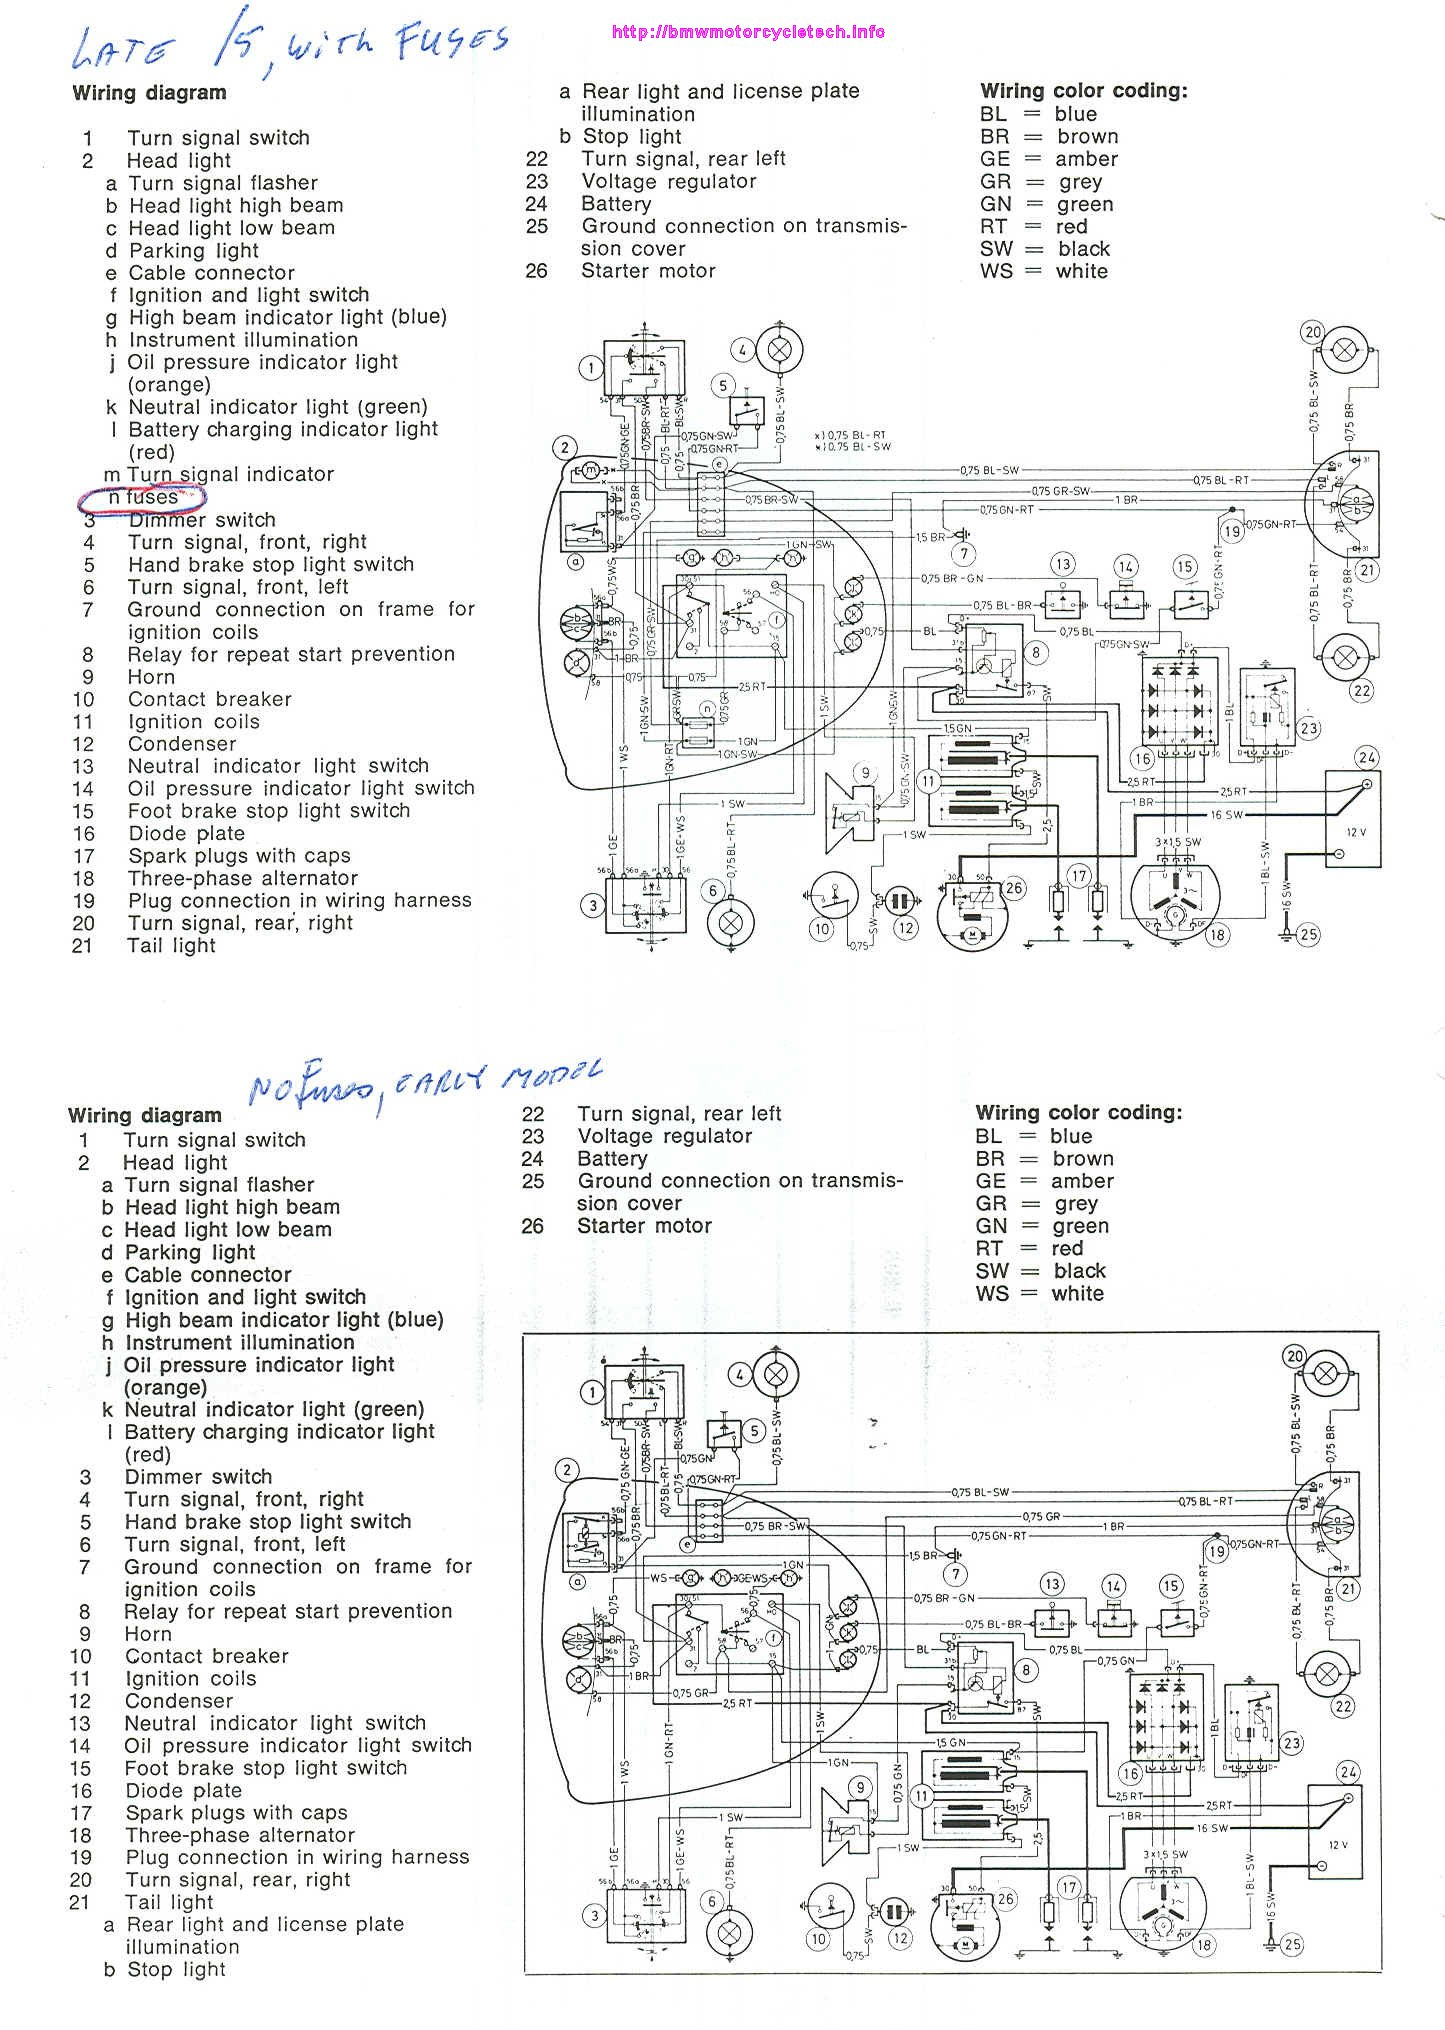 bmw r1200gs lc wiring diagram